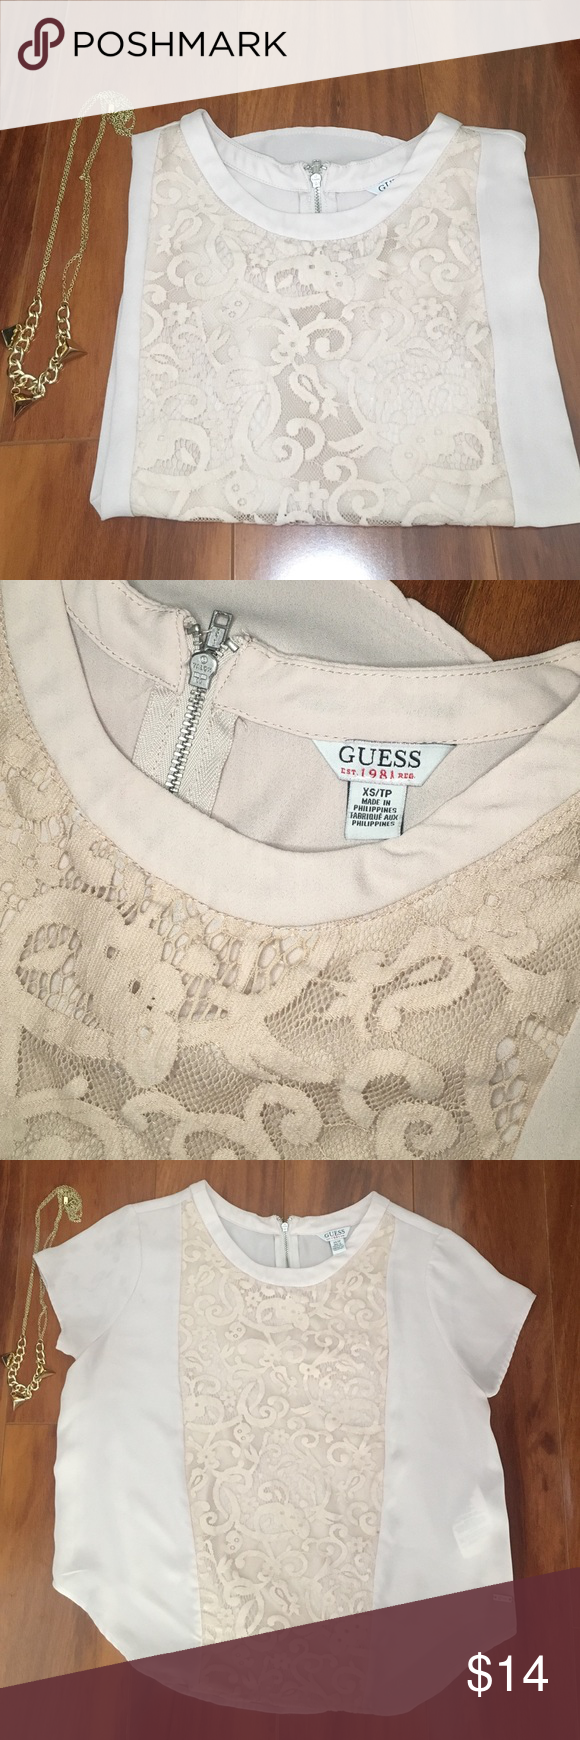 Guess blouse Tan blouse from Guess. Size XS. Lace detail in the front. zipper in the back. In perfect condition🔻-no trades-no modeling-bundle pricing available- 🔻 Guess Tops Blouses